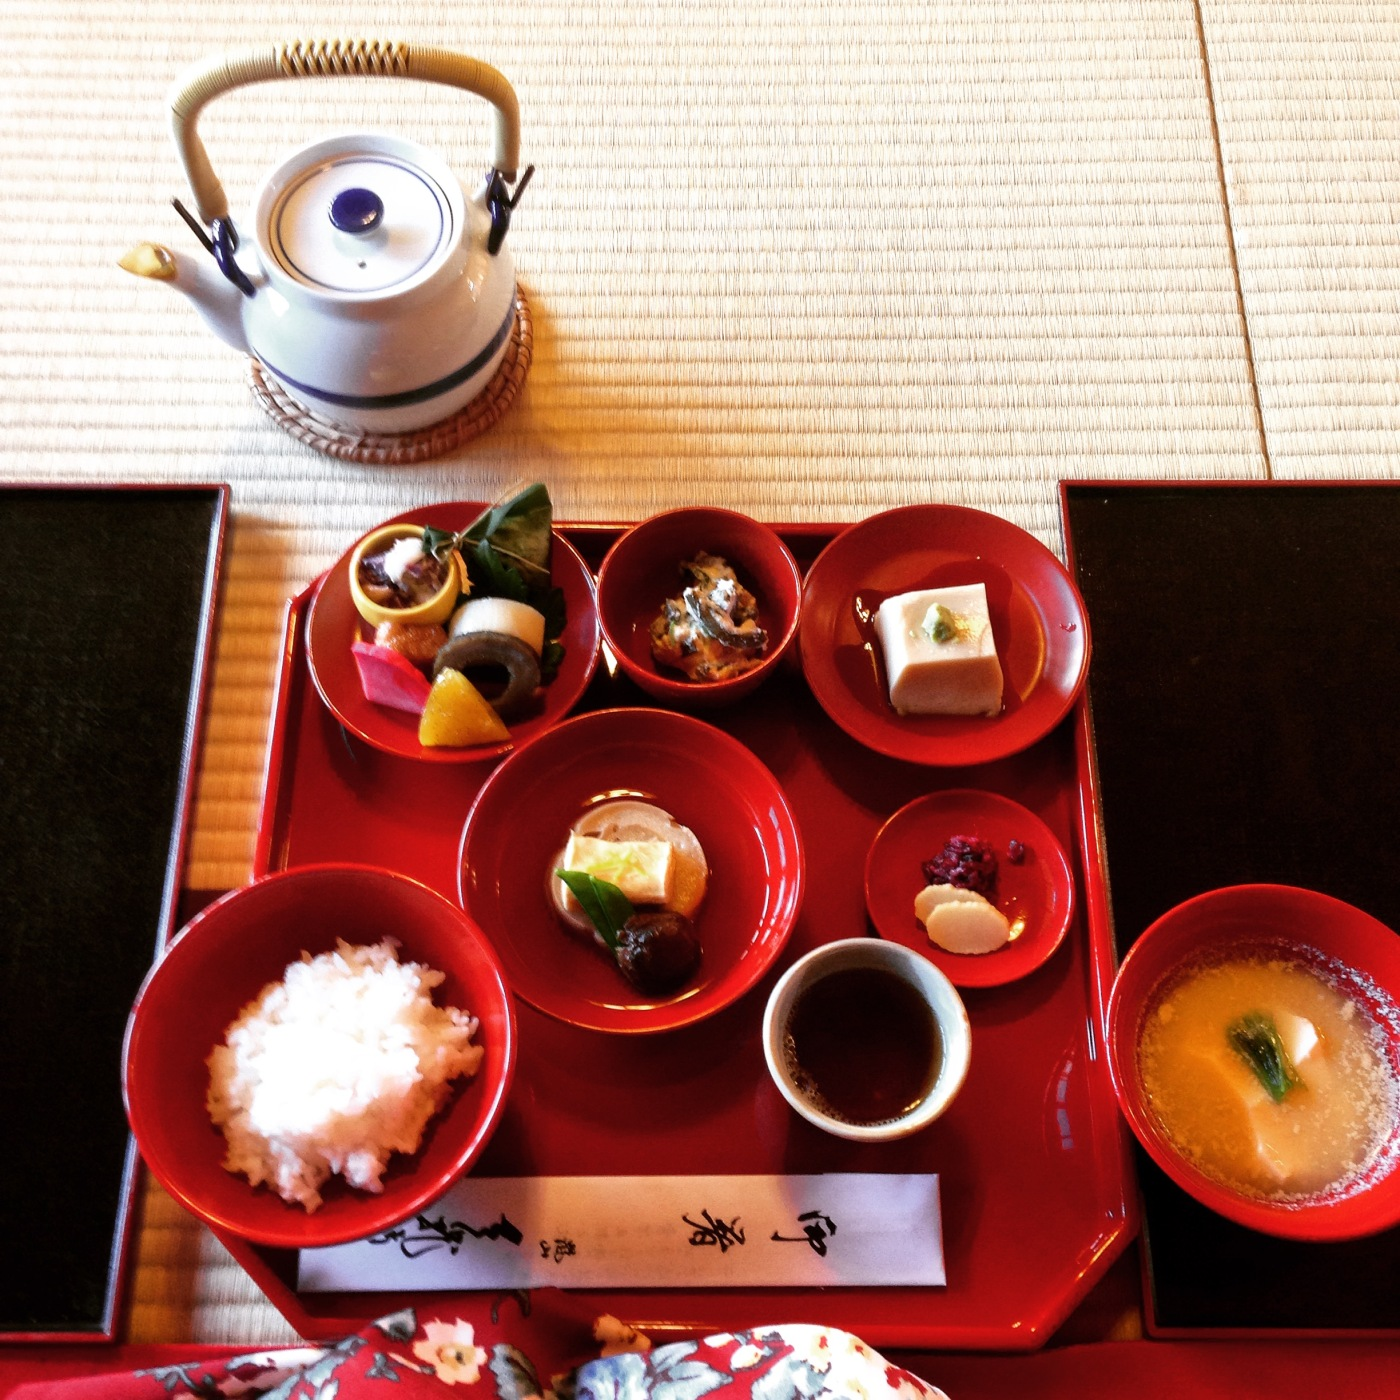 Japan, Japanese food, food, traditional Japanese